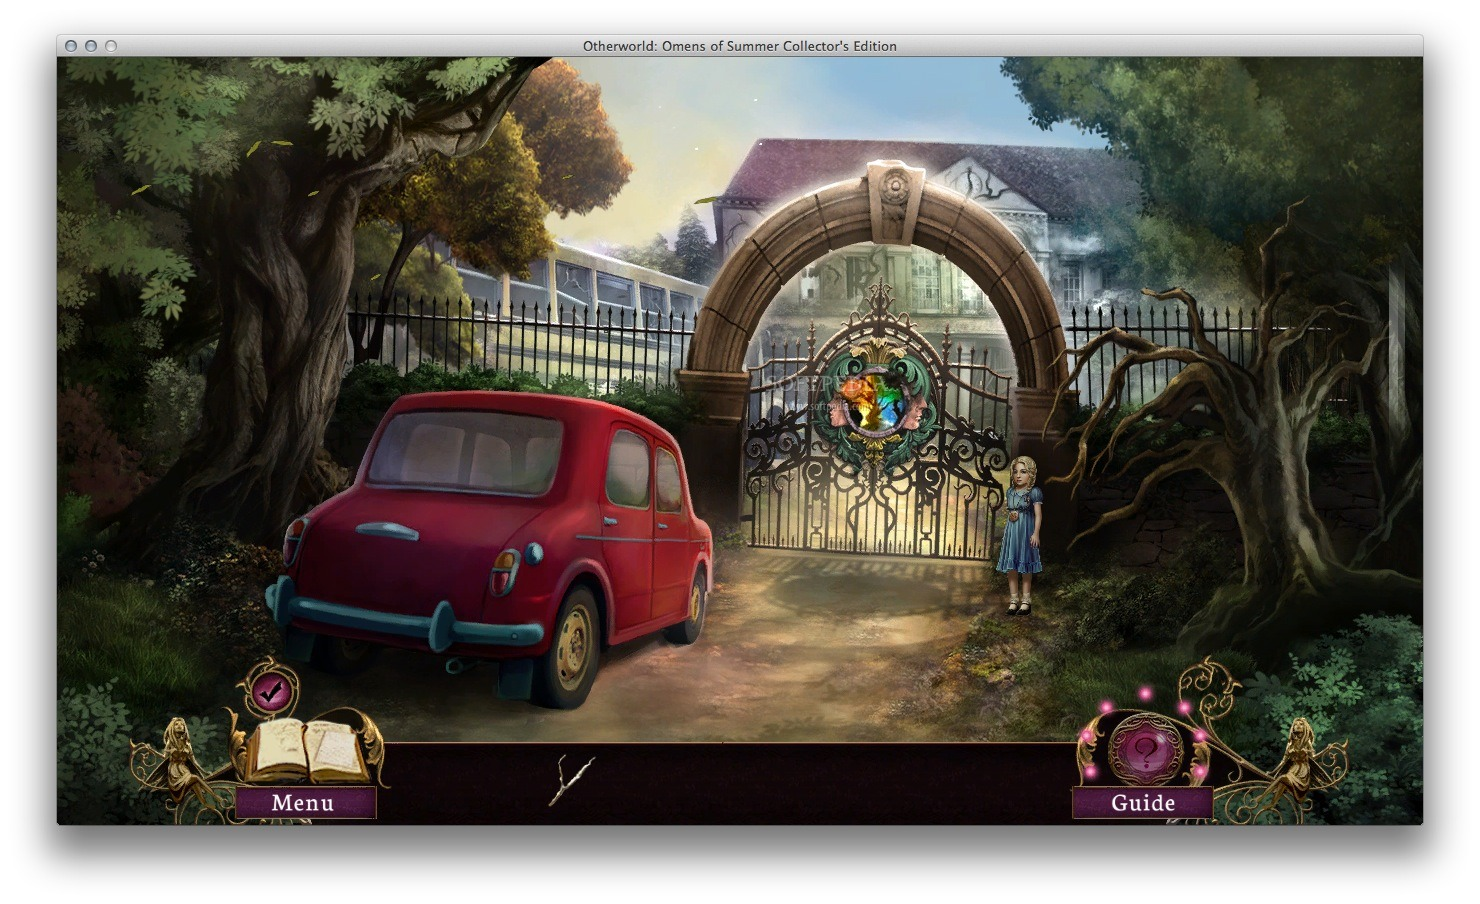 Otherworld: Omens of Summer CE screenshot 1 - In the main window you must explore your surroundings.